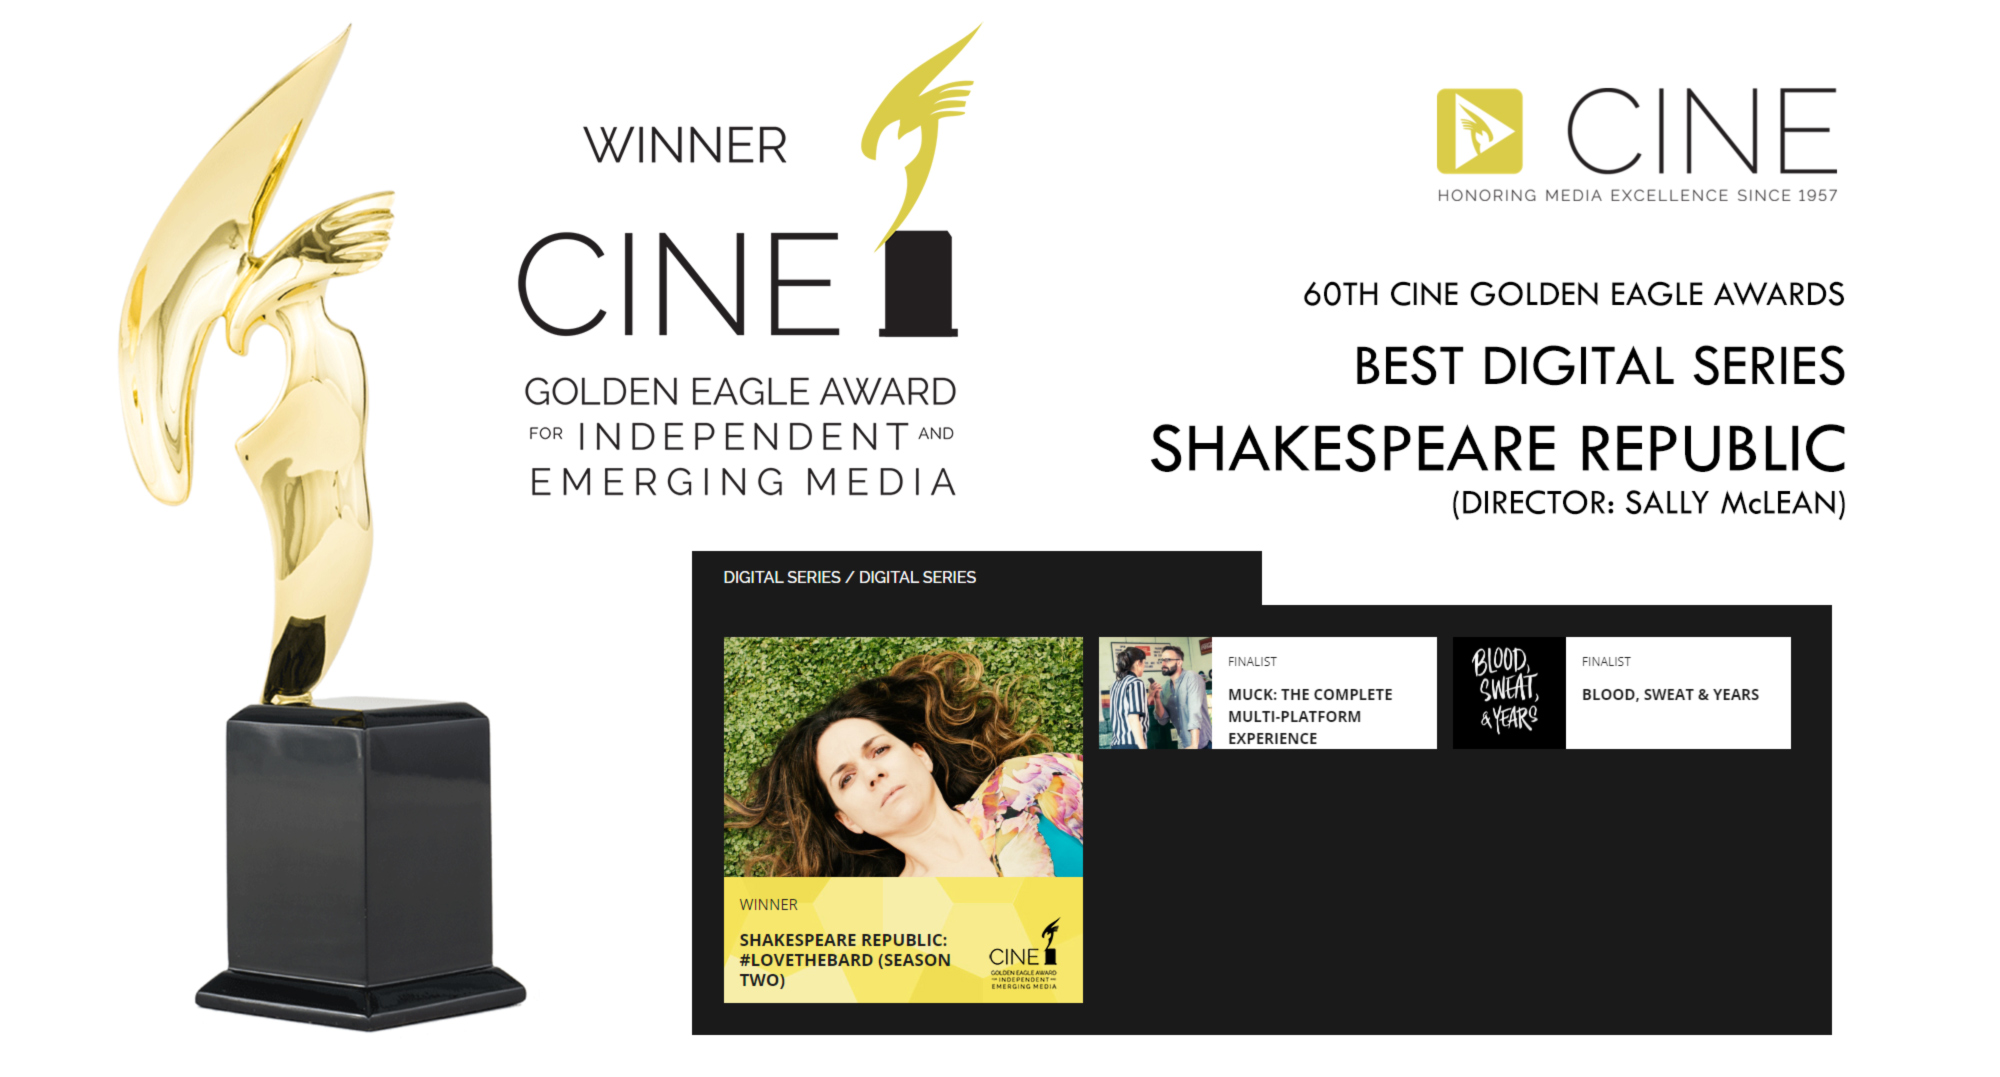 cine golden eagle award announcement